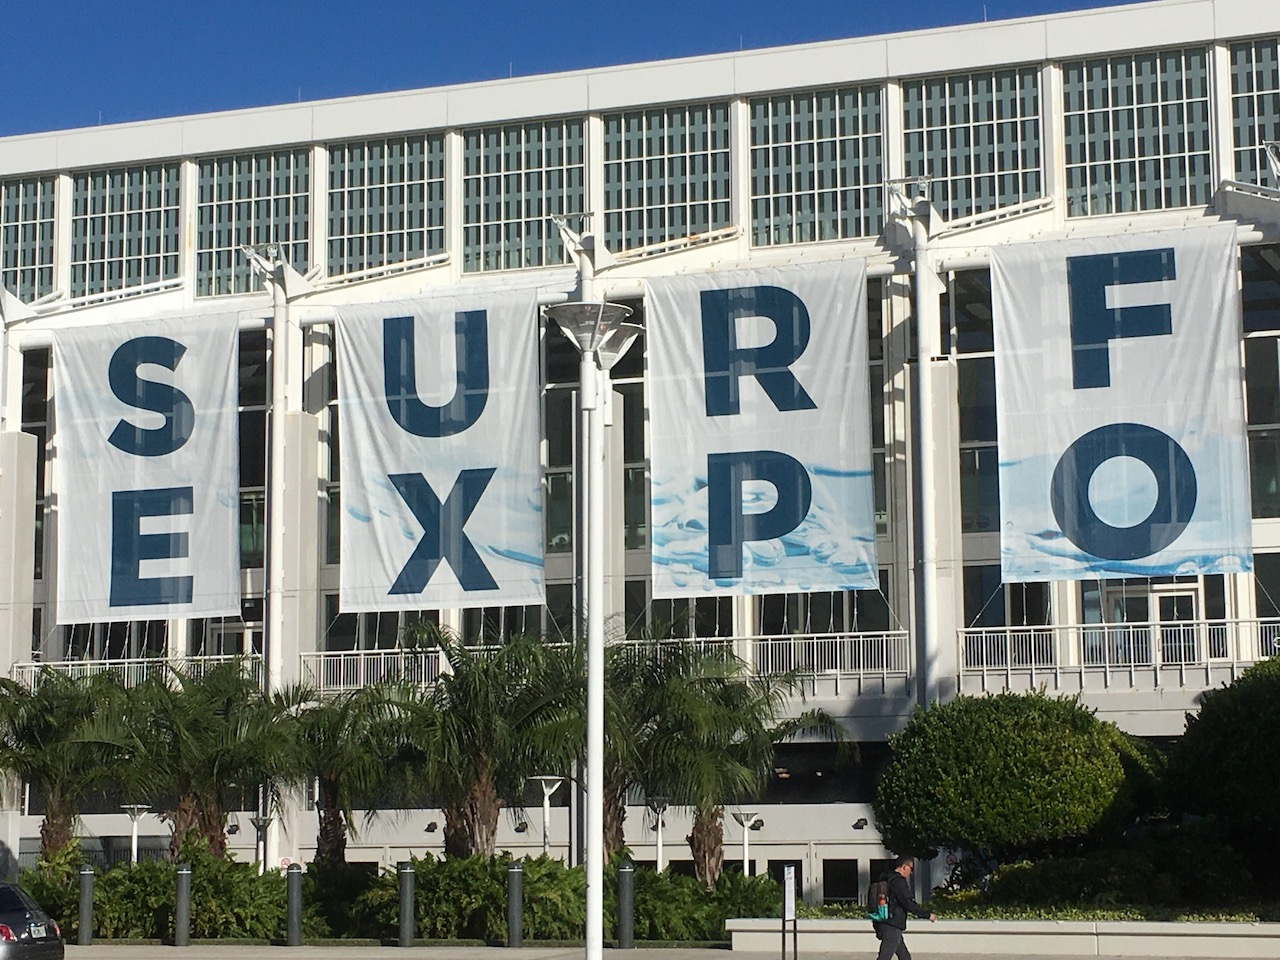 1 Surf Expo is held at the Orange County convention center in Orlando